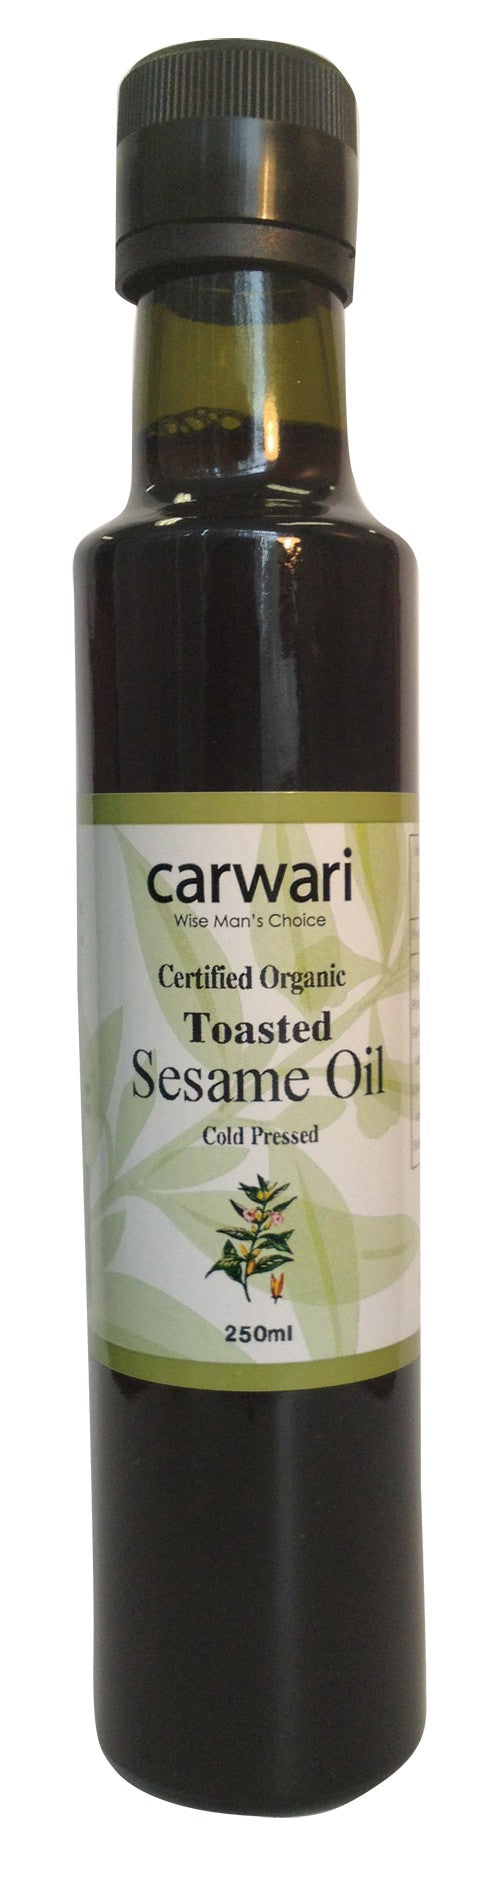 Carwari, Toasted Sesame Oil, Organic, Cold Pressed, 250 ml